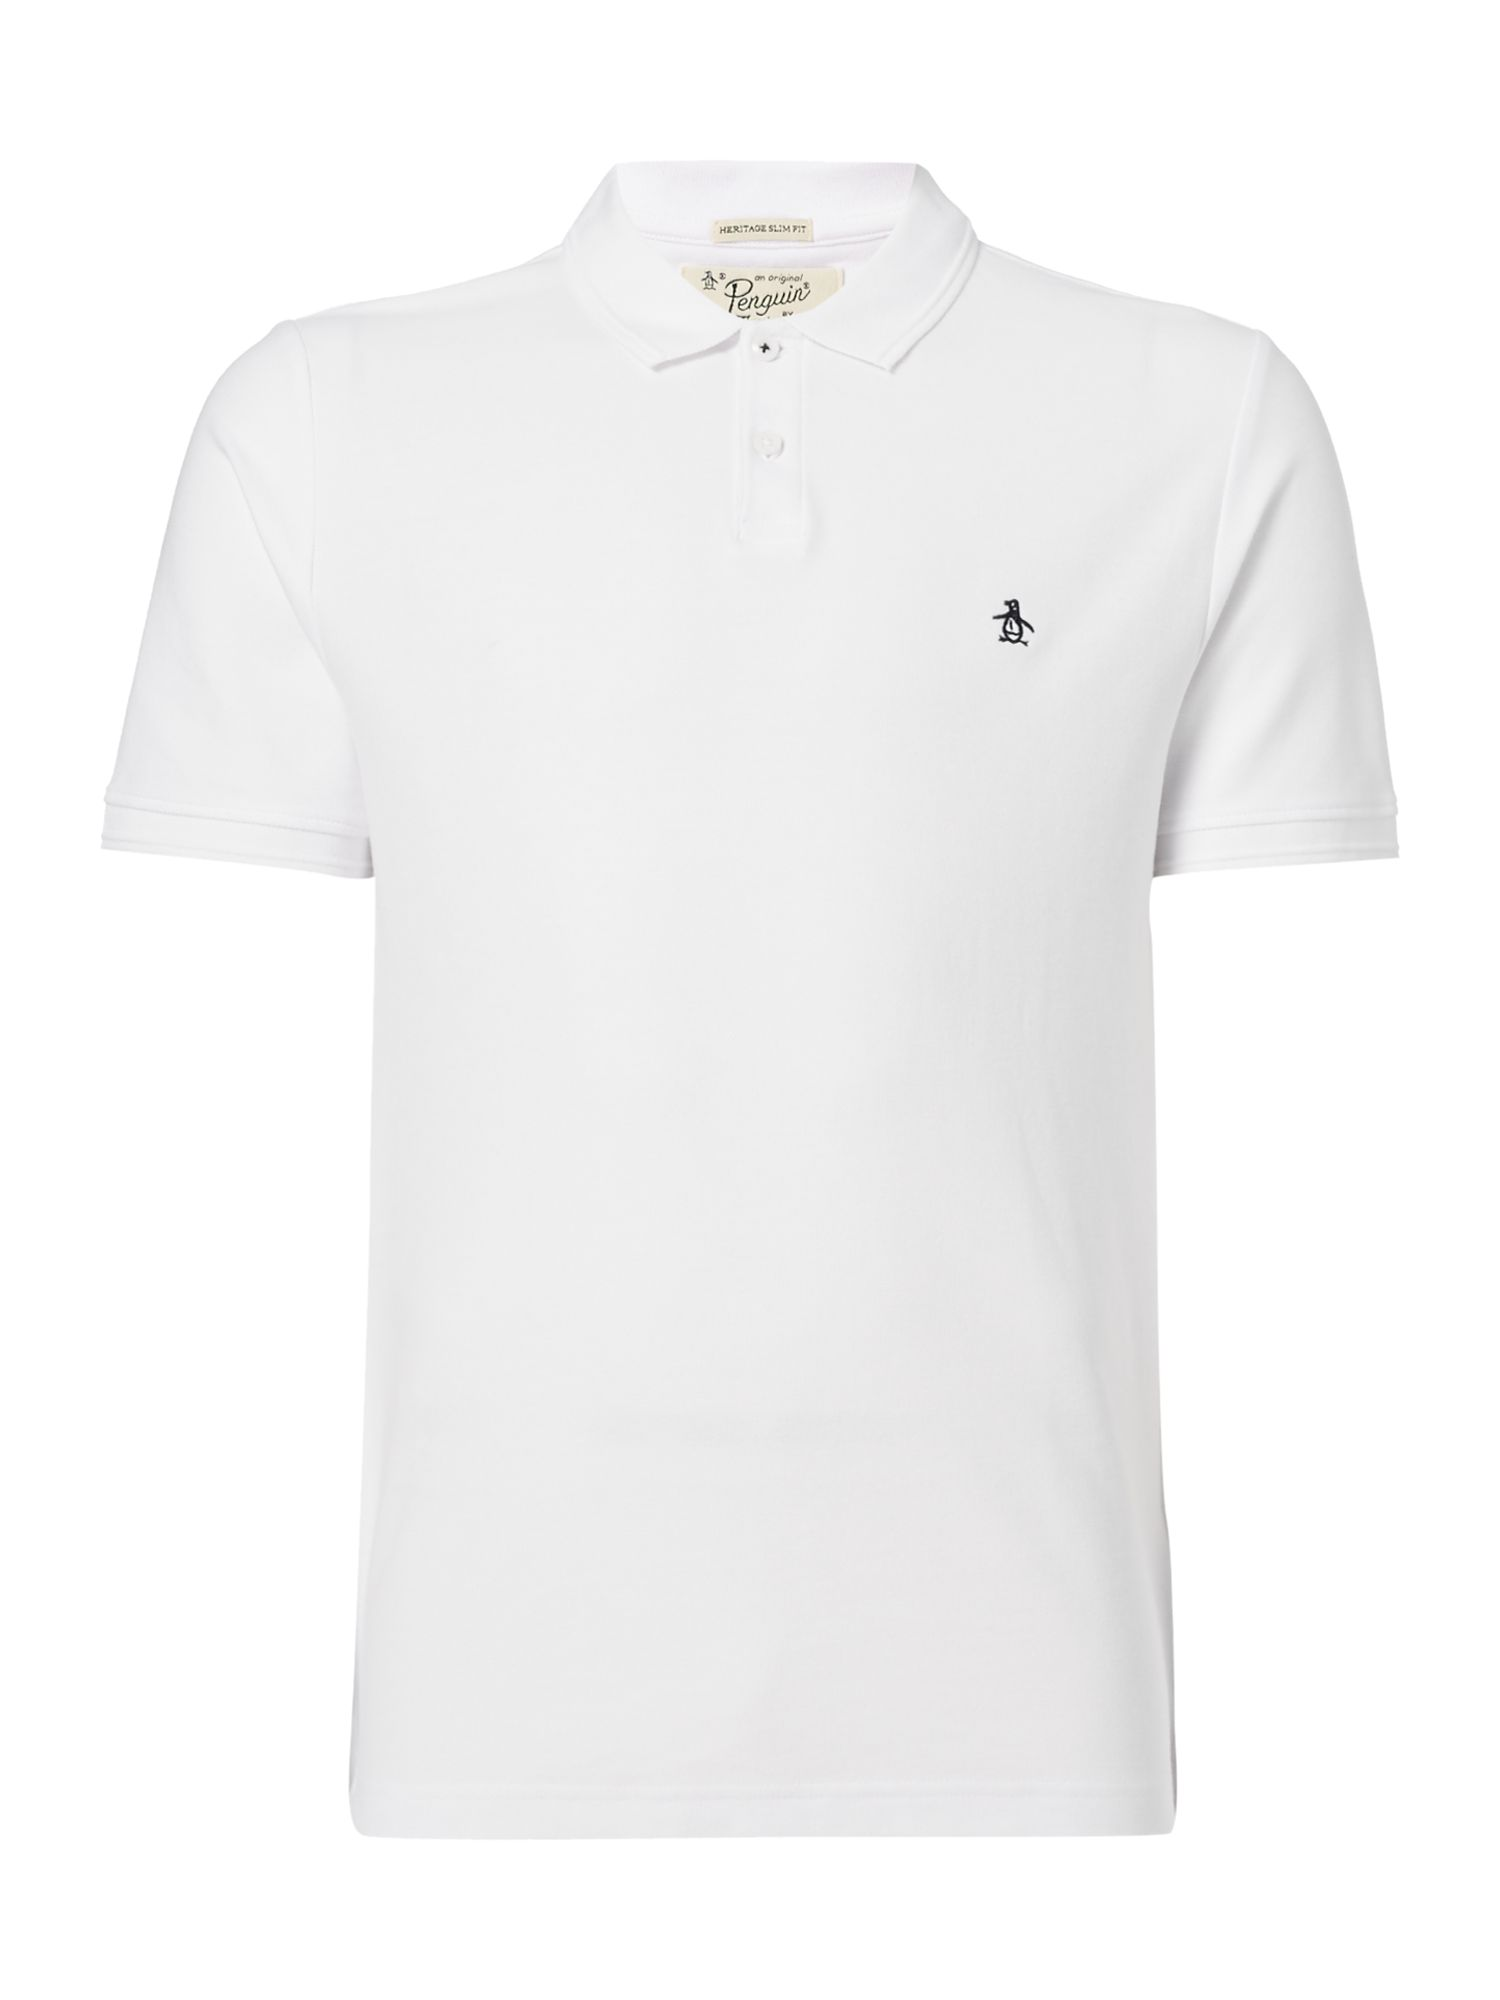 Men's Original Penguin Cotton Raised-Rib short sleeve polo, White